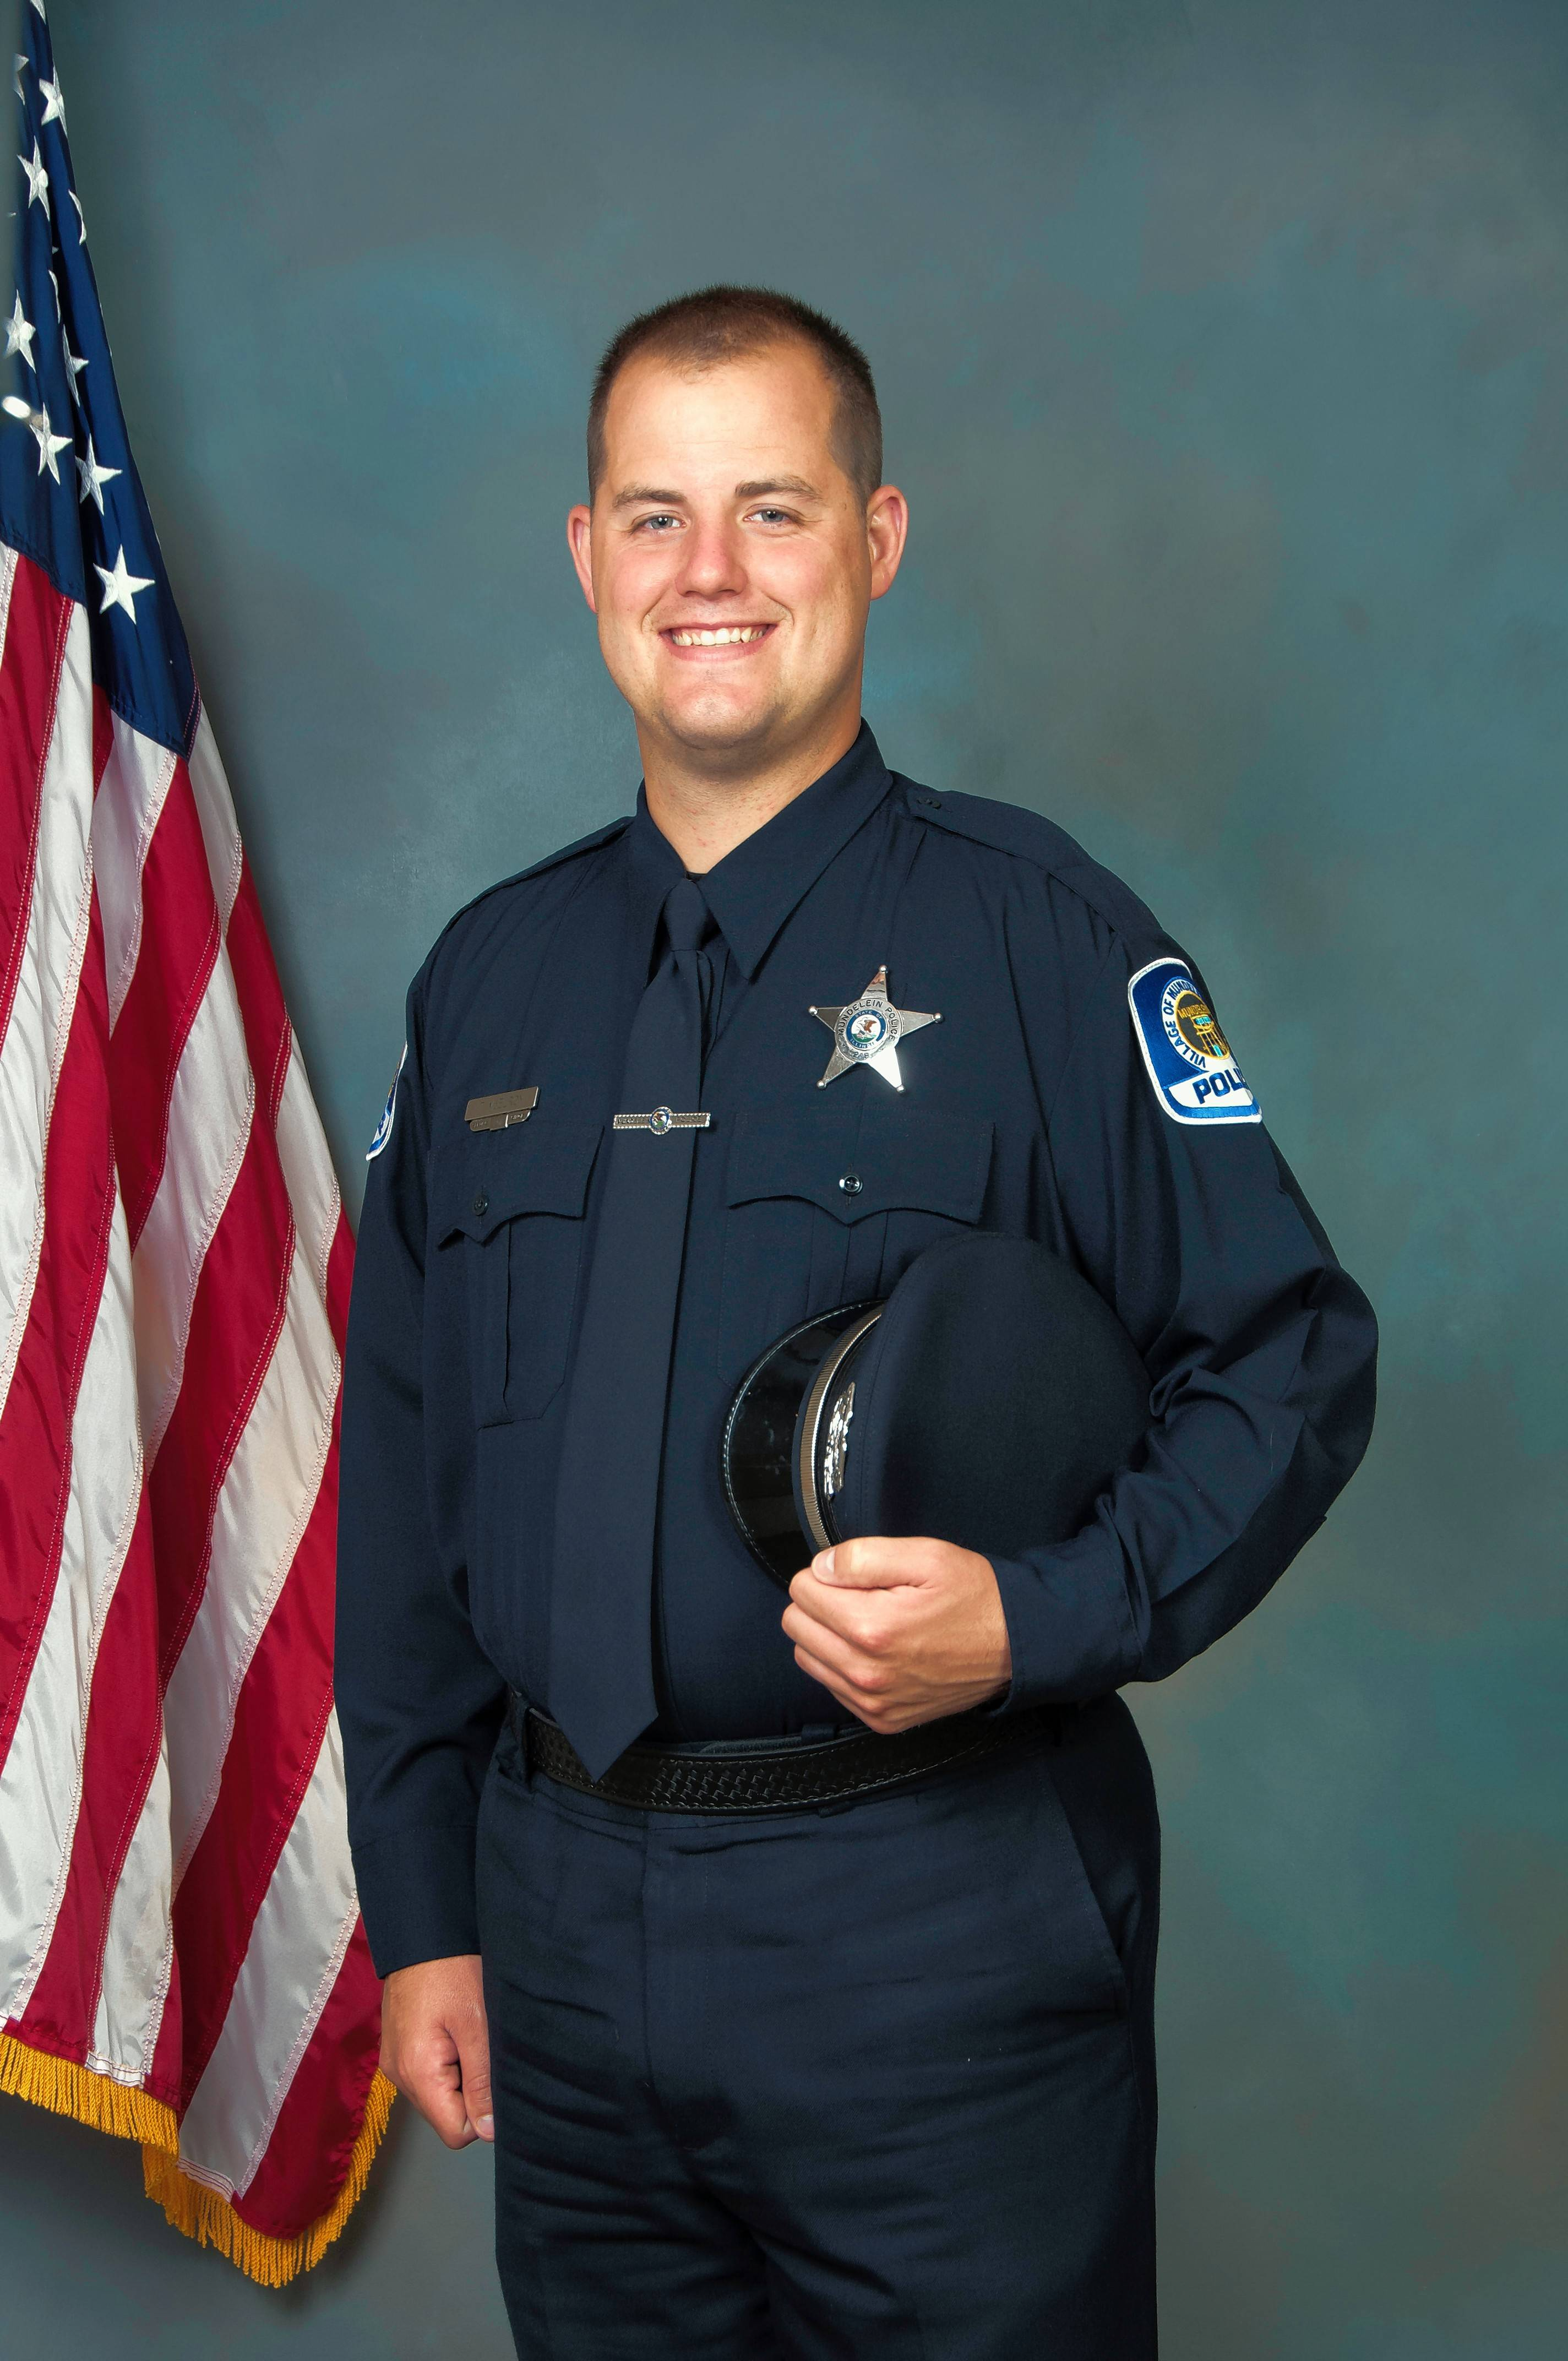 Suburban hero: Mundelein officer used defibrillator to help save man after heart attack